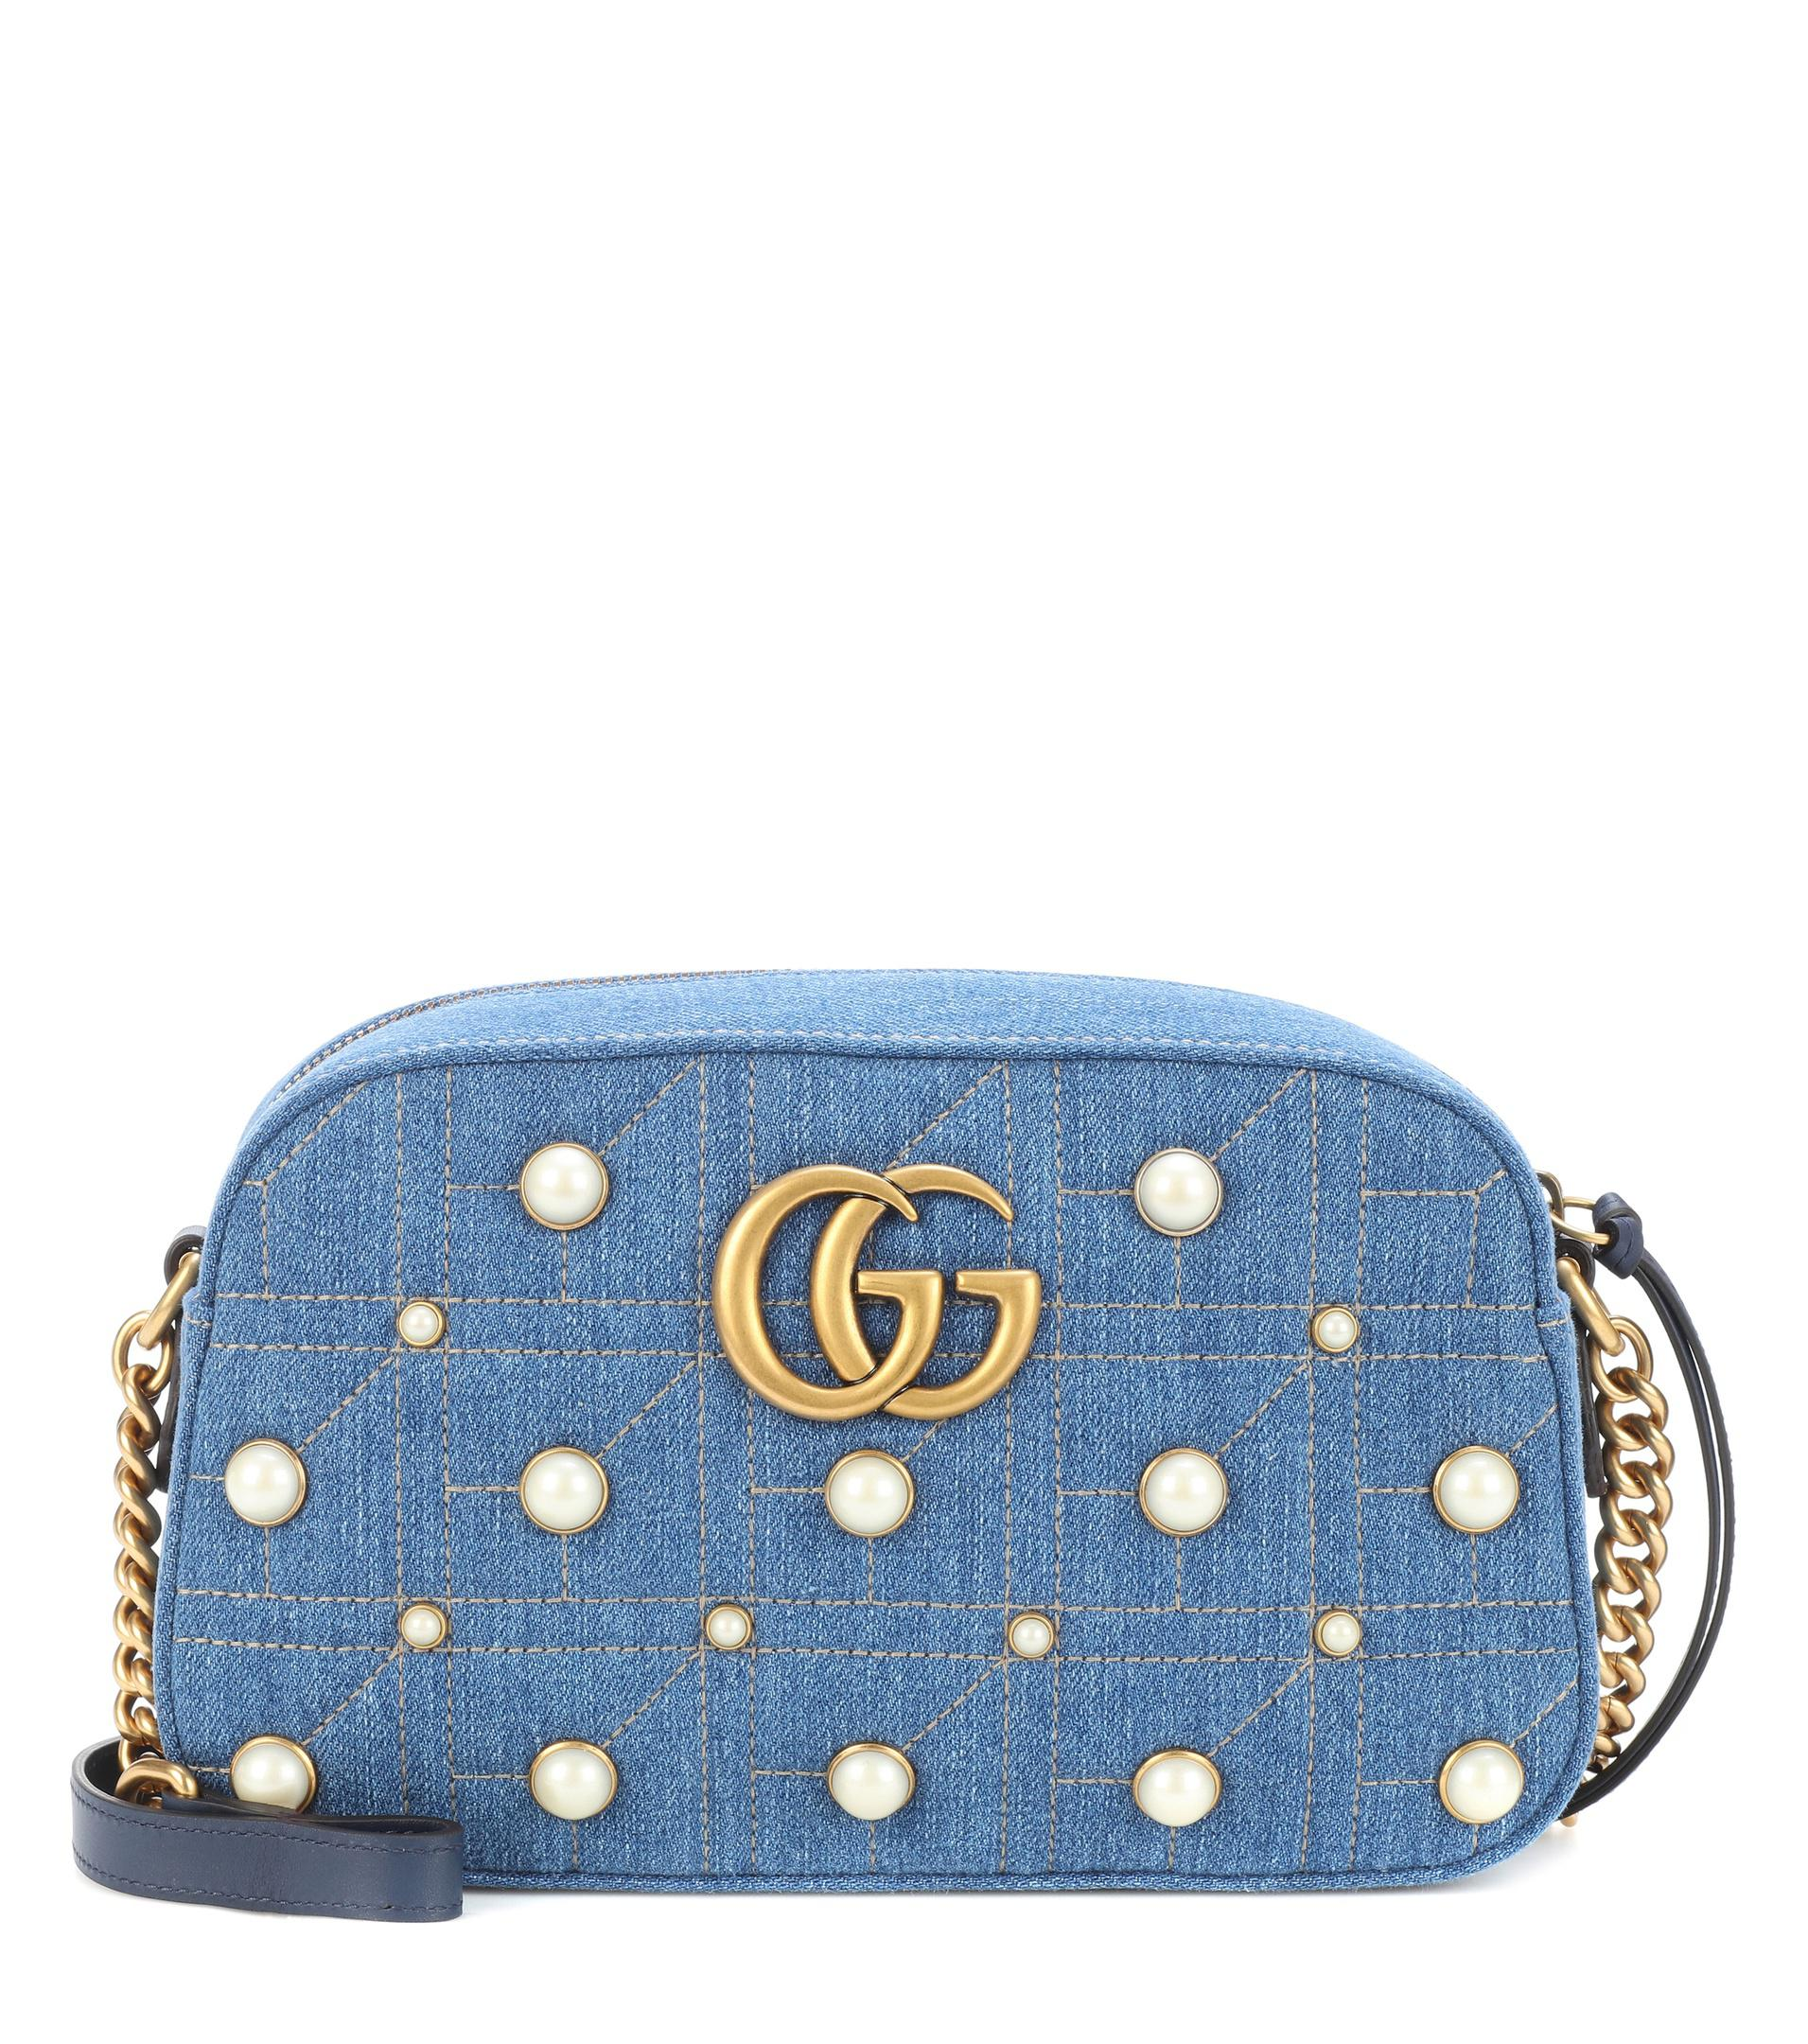 Sac cross-body en denim à ornements GG Marmont rWl5Es